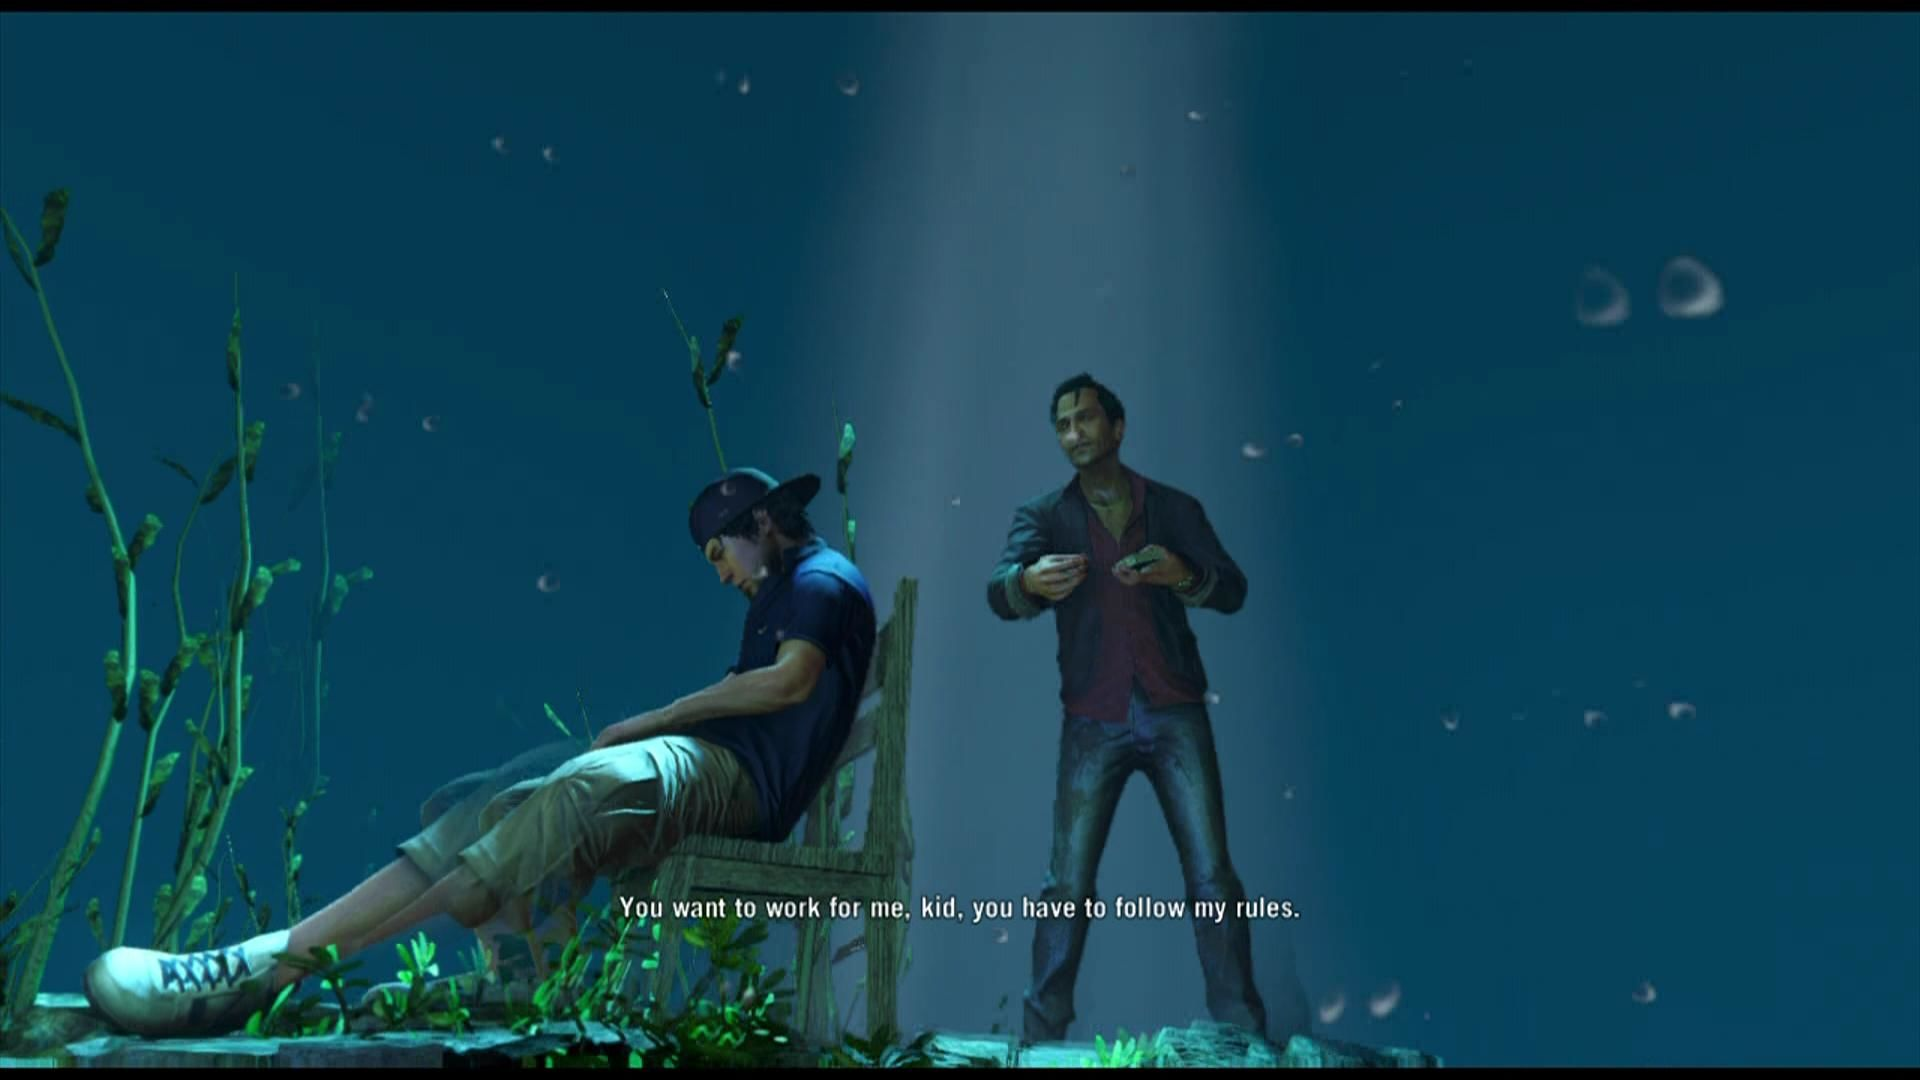 Far Cry 3 Xbox 360 Drugs are used sometimes in the game, which result in weird dream sequences